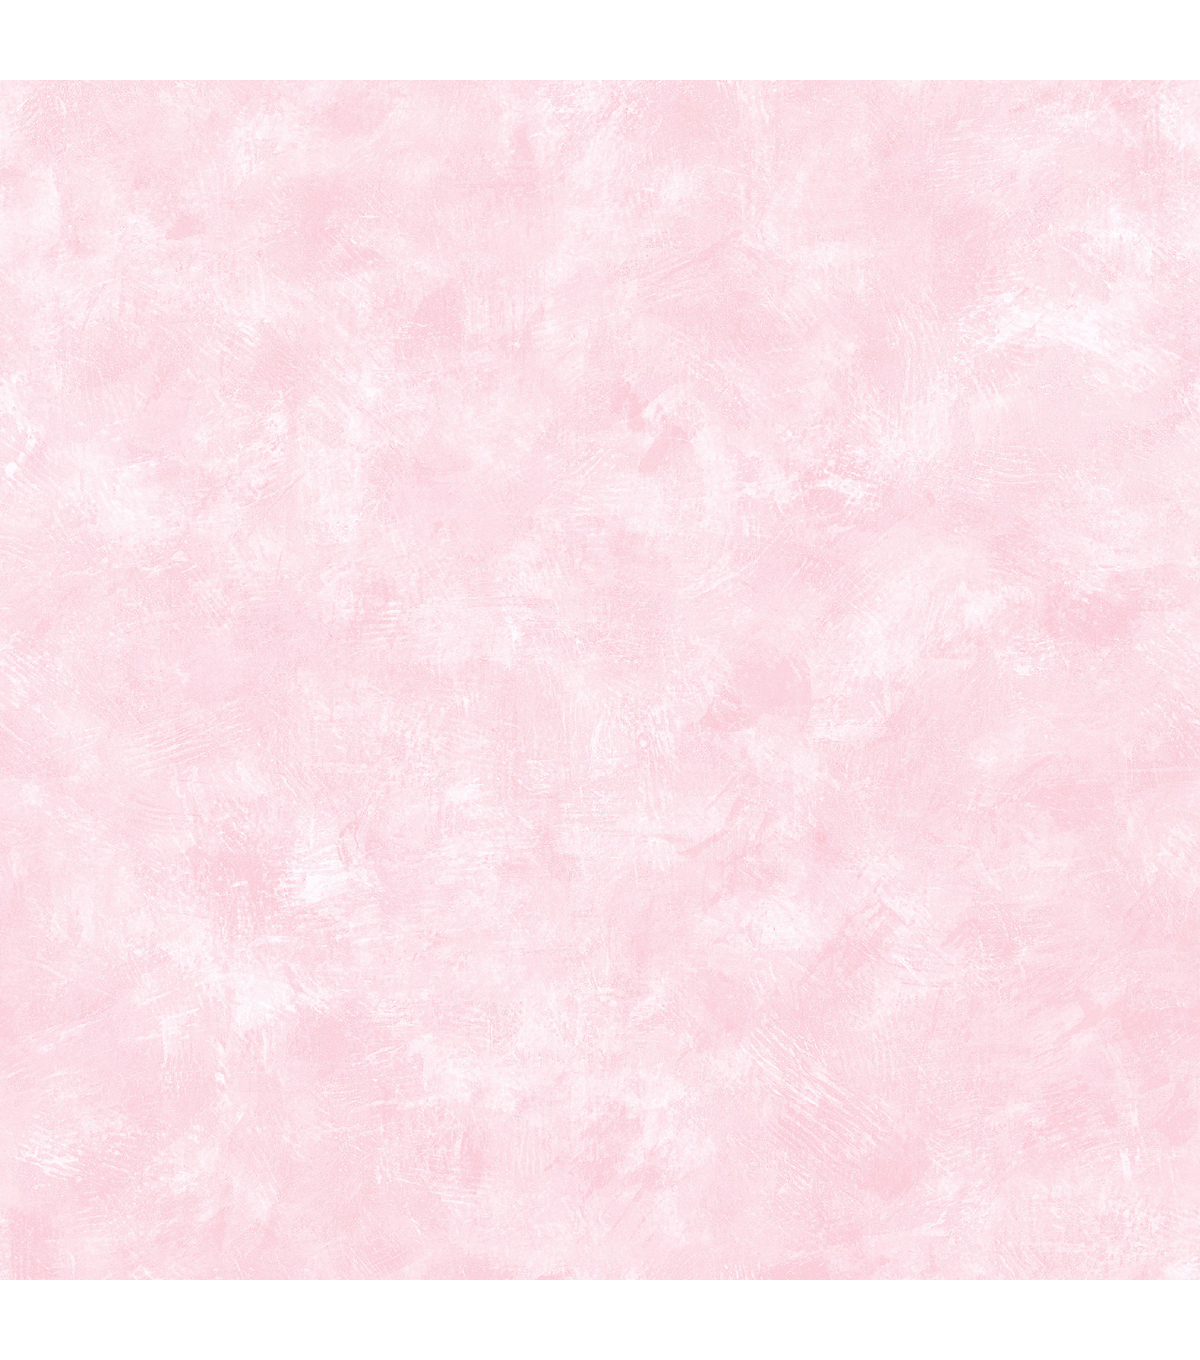 Gypsum Pink Plaster Texture Wallpaper Sample